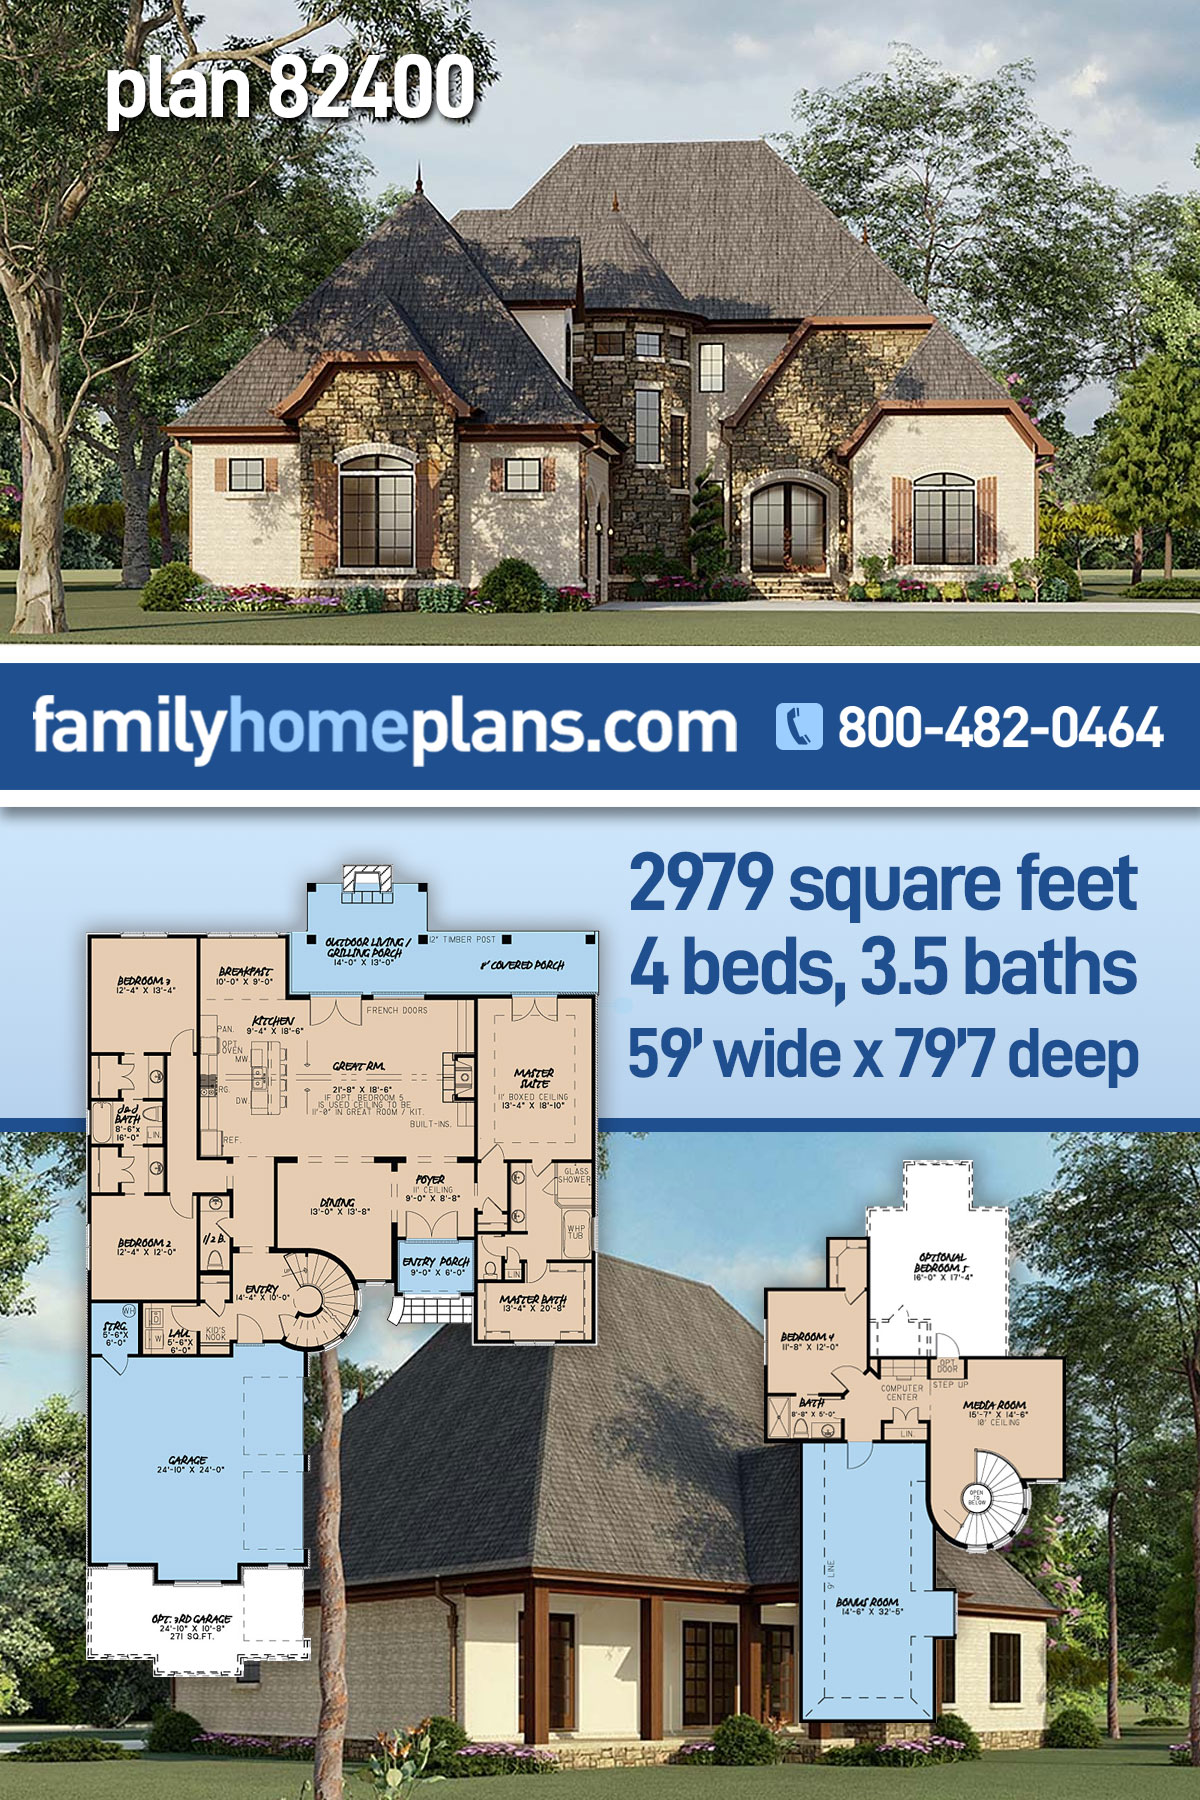 Cottage, European, French Country House Plan 82400 with 4 Beds, 4 Baths, 2 Car Garage